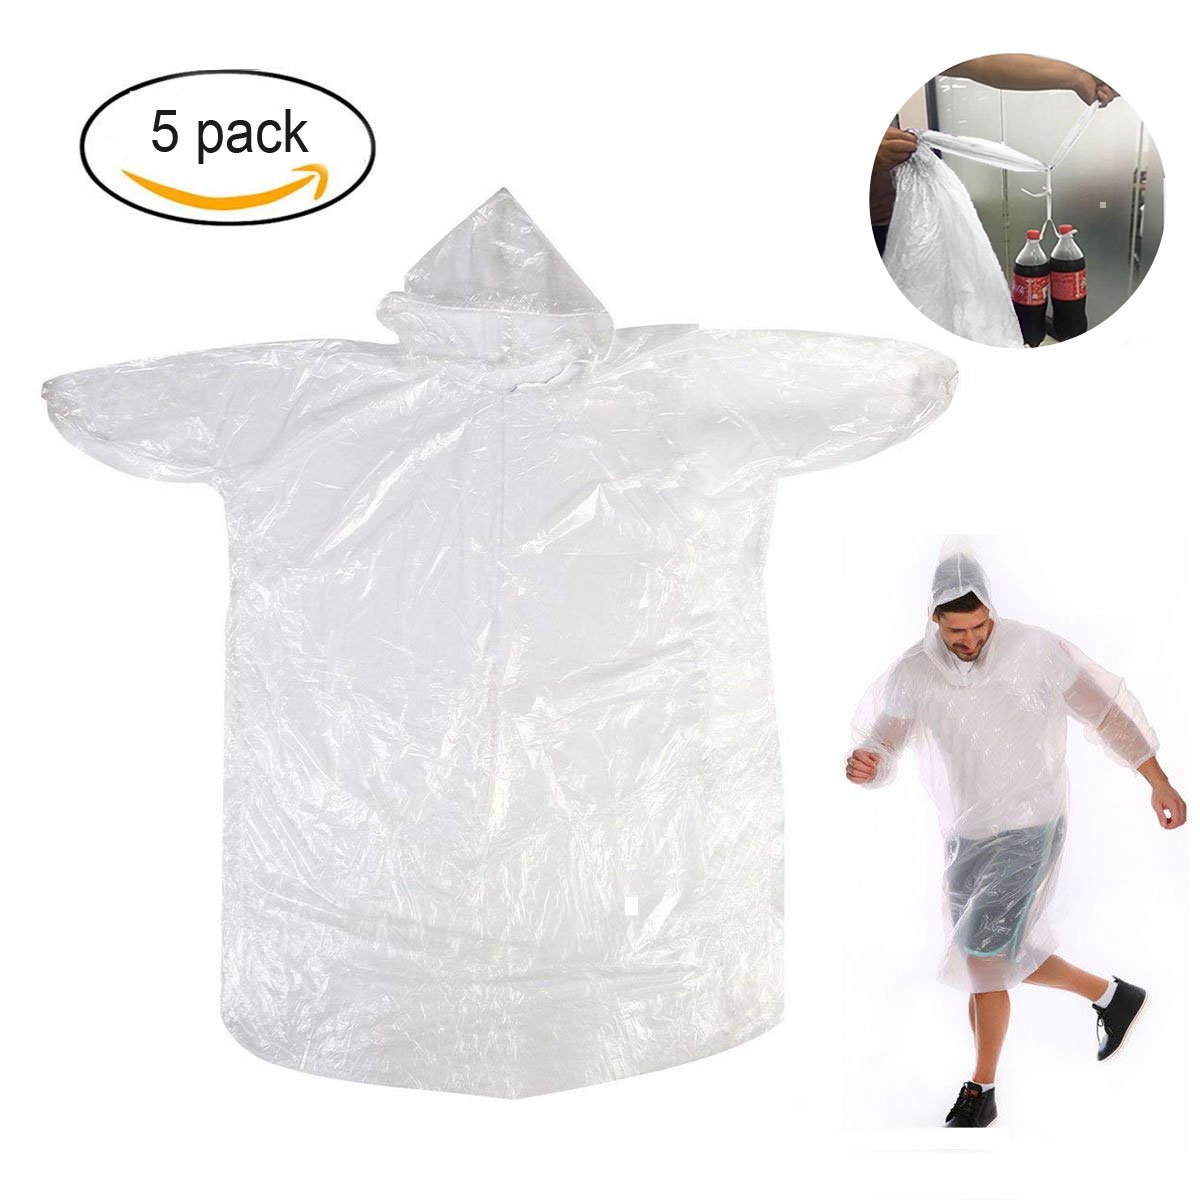 TopWill Disposable Rain Poncho, 3 Wire Thickness Emergency Waterproof Poncho Plastic Rain Poncho with Hood - Perfect for Outdoor Concert Theme Park Camping Hiking, etc